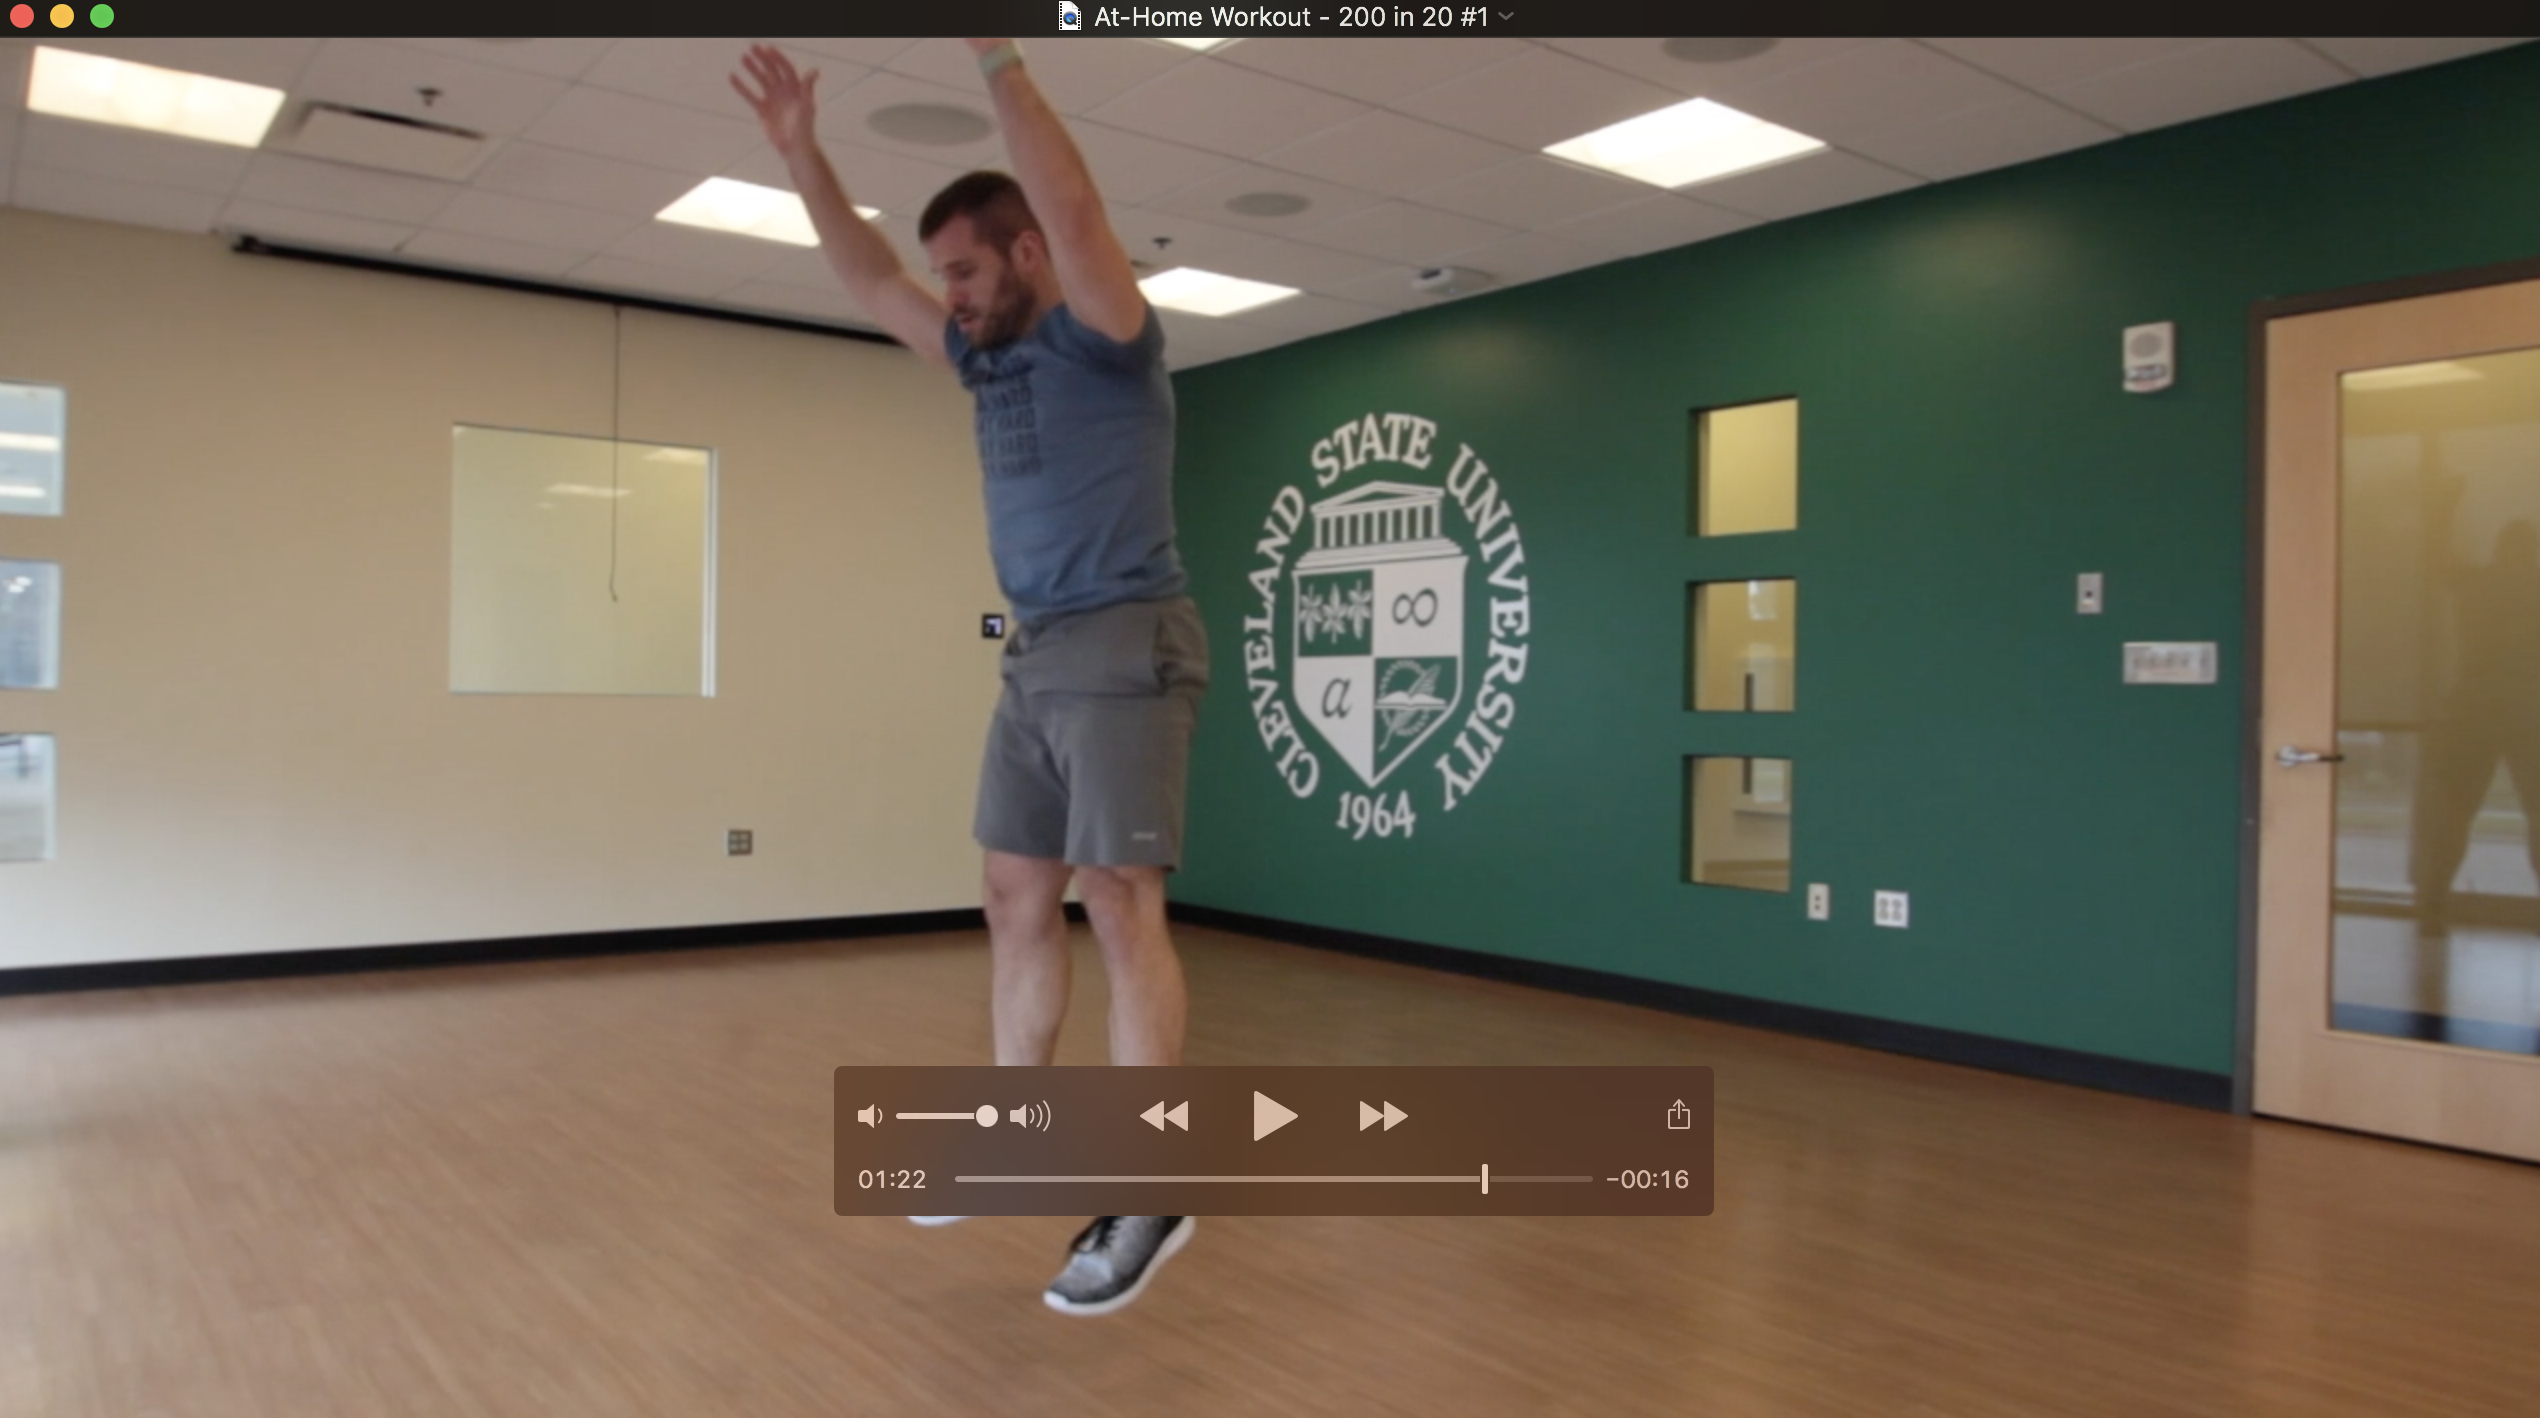 at-home workout video screen cap